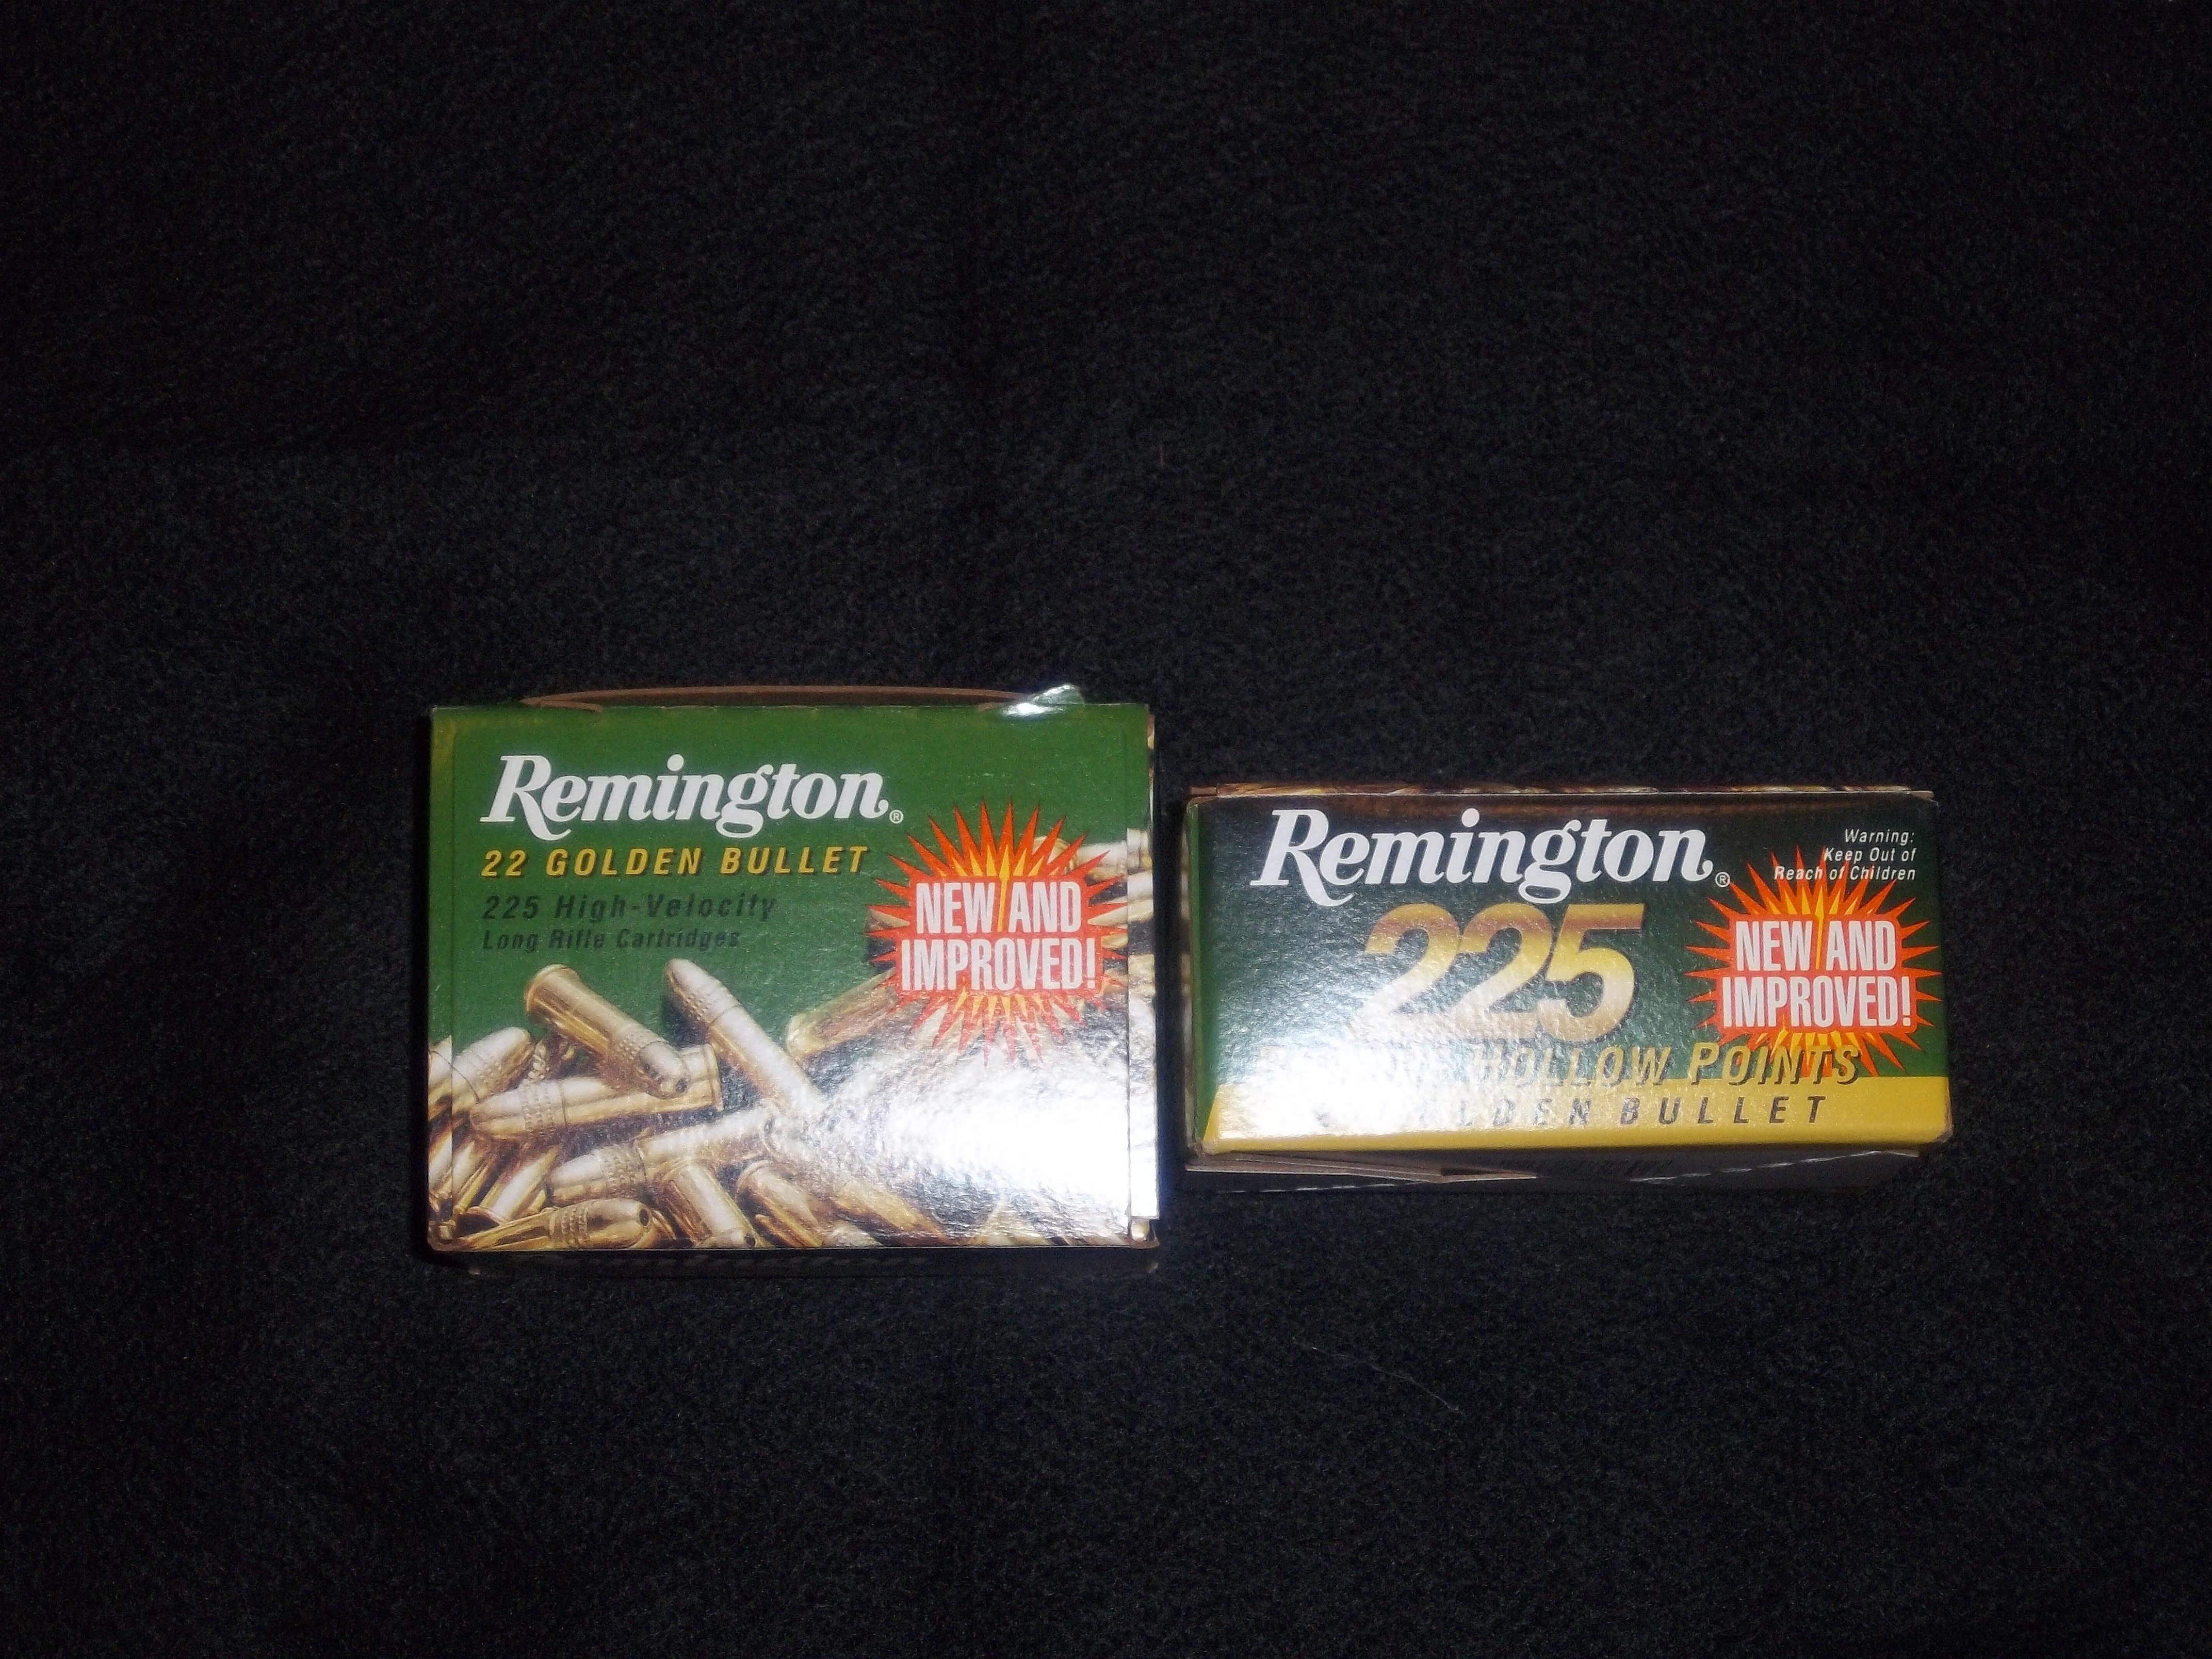 Remington Golden Bullet 22 LR Ammunition 450 rds  Non-Guns > Ammunition